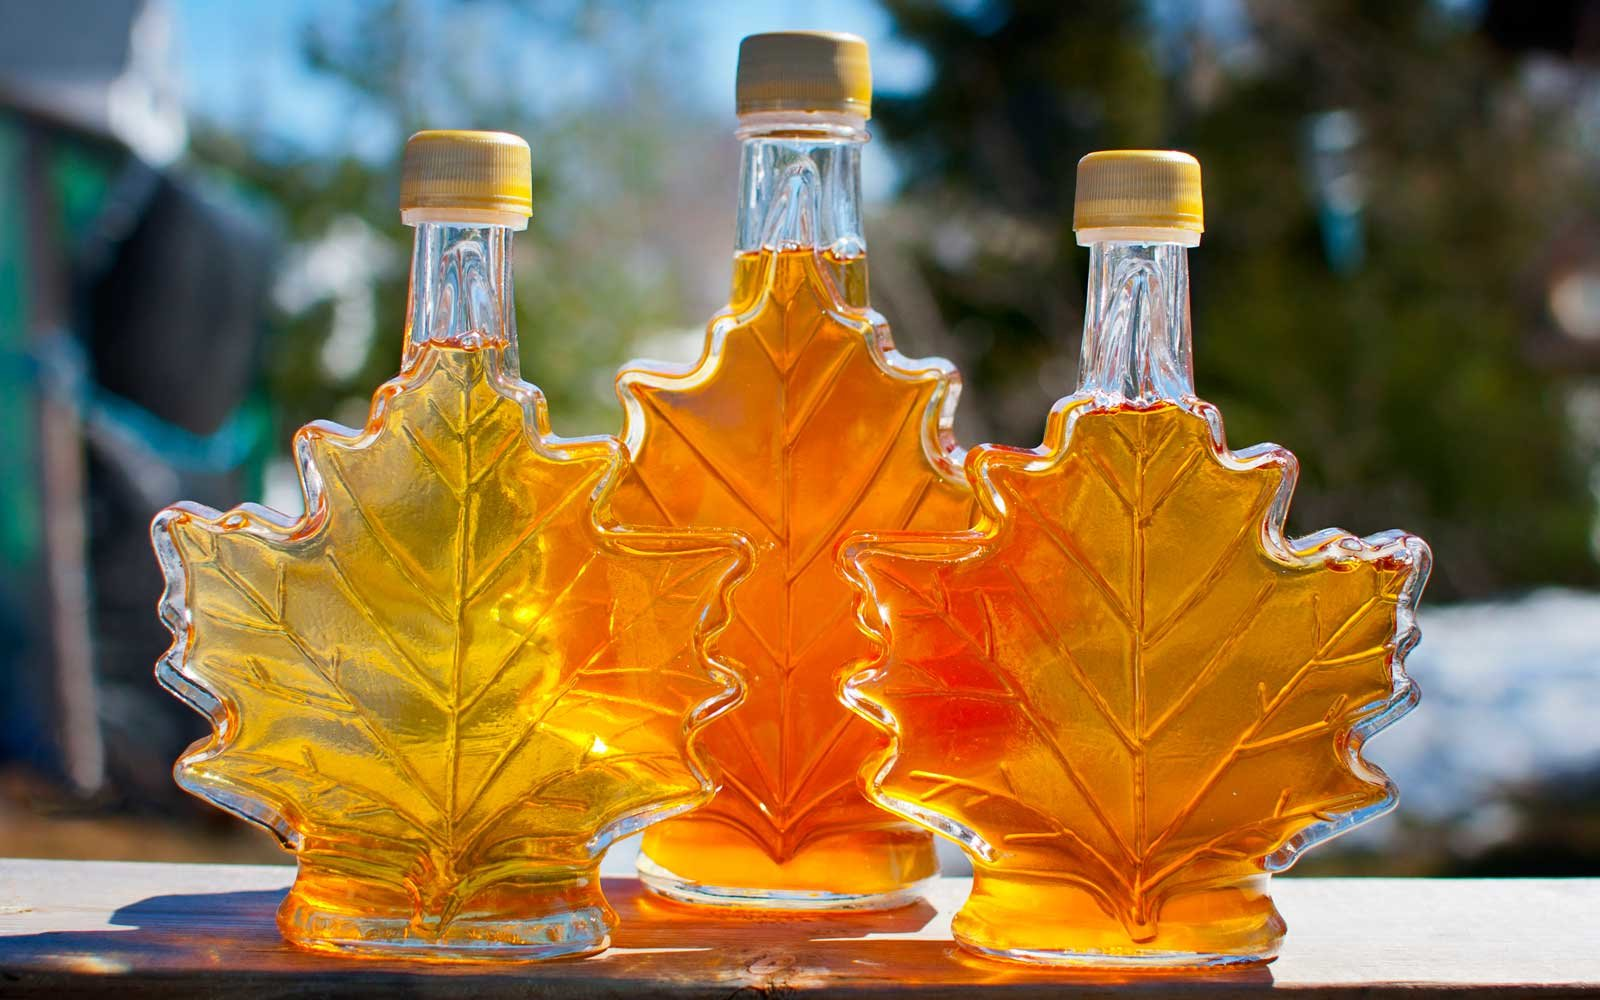 150 reasons canada is great in honor of its 150th anniversary